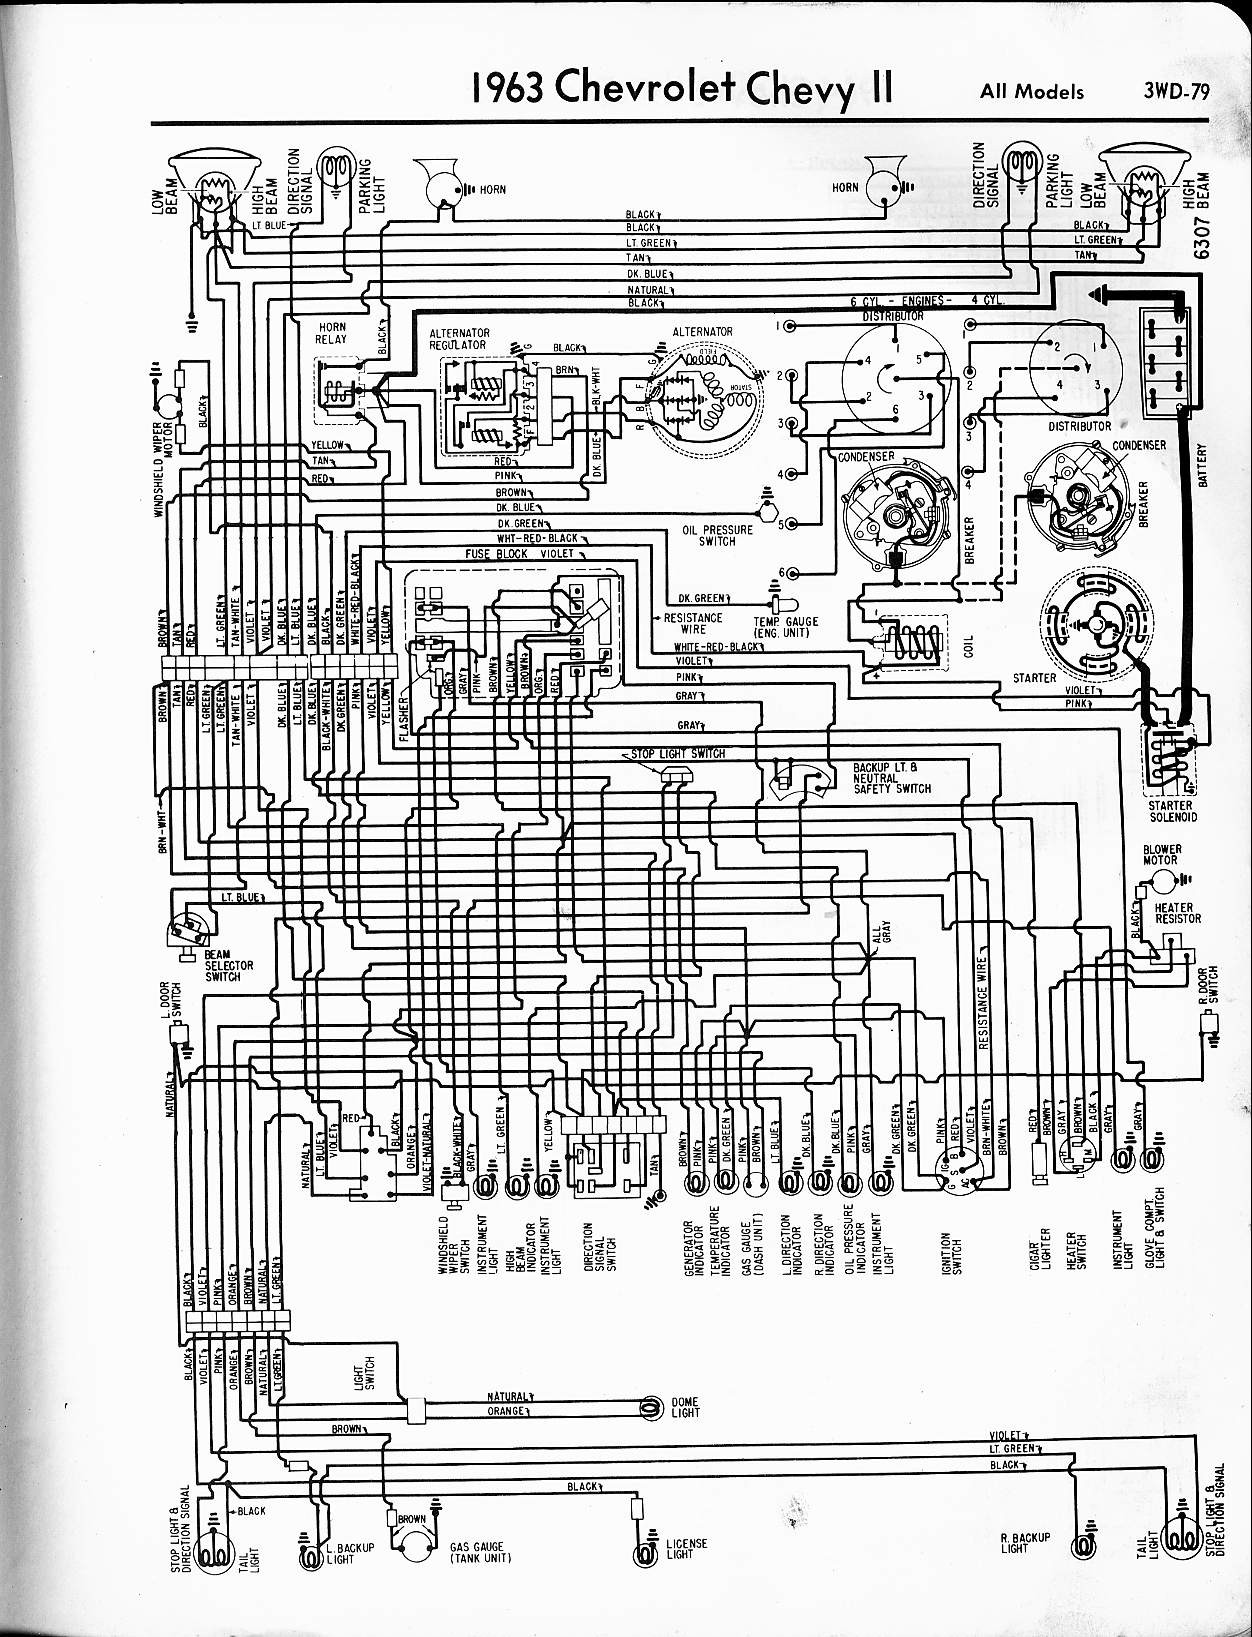 1965 Chevy Impala Wiring Diagram Schematic Library 1968 Camaro Turn Signal 1966 Nova Schematics Diagrams U2022 Rh Seniorlivinguniversity Co Harness